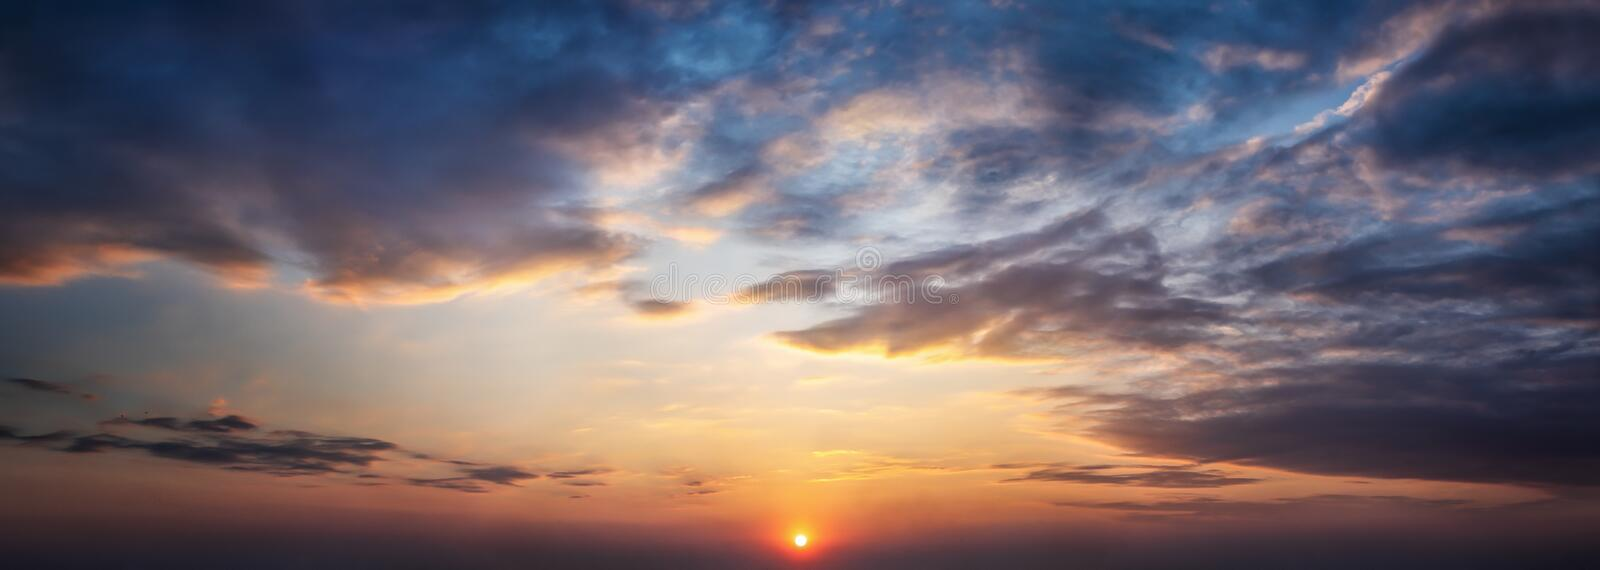 Dramatic sunset and sunrise sky. Orange and yellow colors sunset. Panoramic view. Dramatic sunset and sunrise sky. Orange, blue and yellow colors sunset royalty free stock images